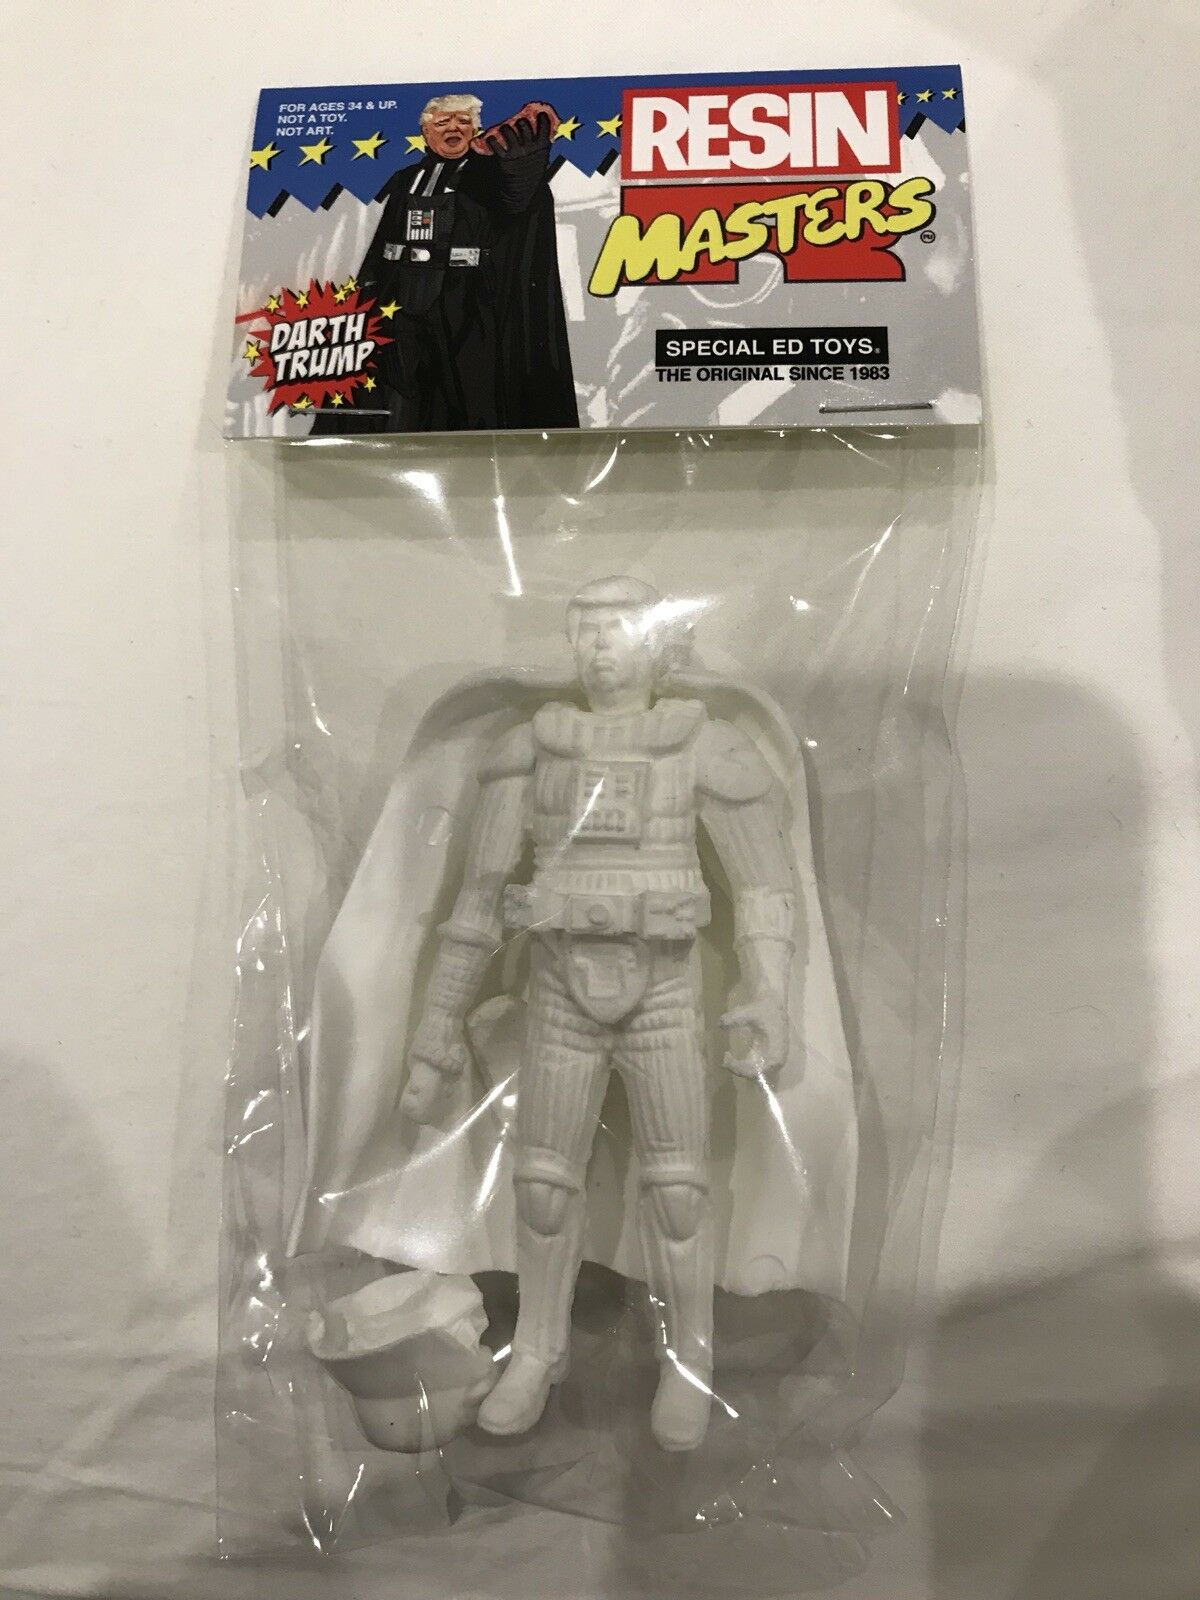 Darth Trump Resin Masters SDCC 2018 Special Ed Toys